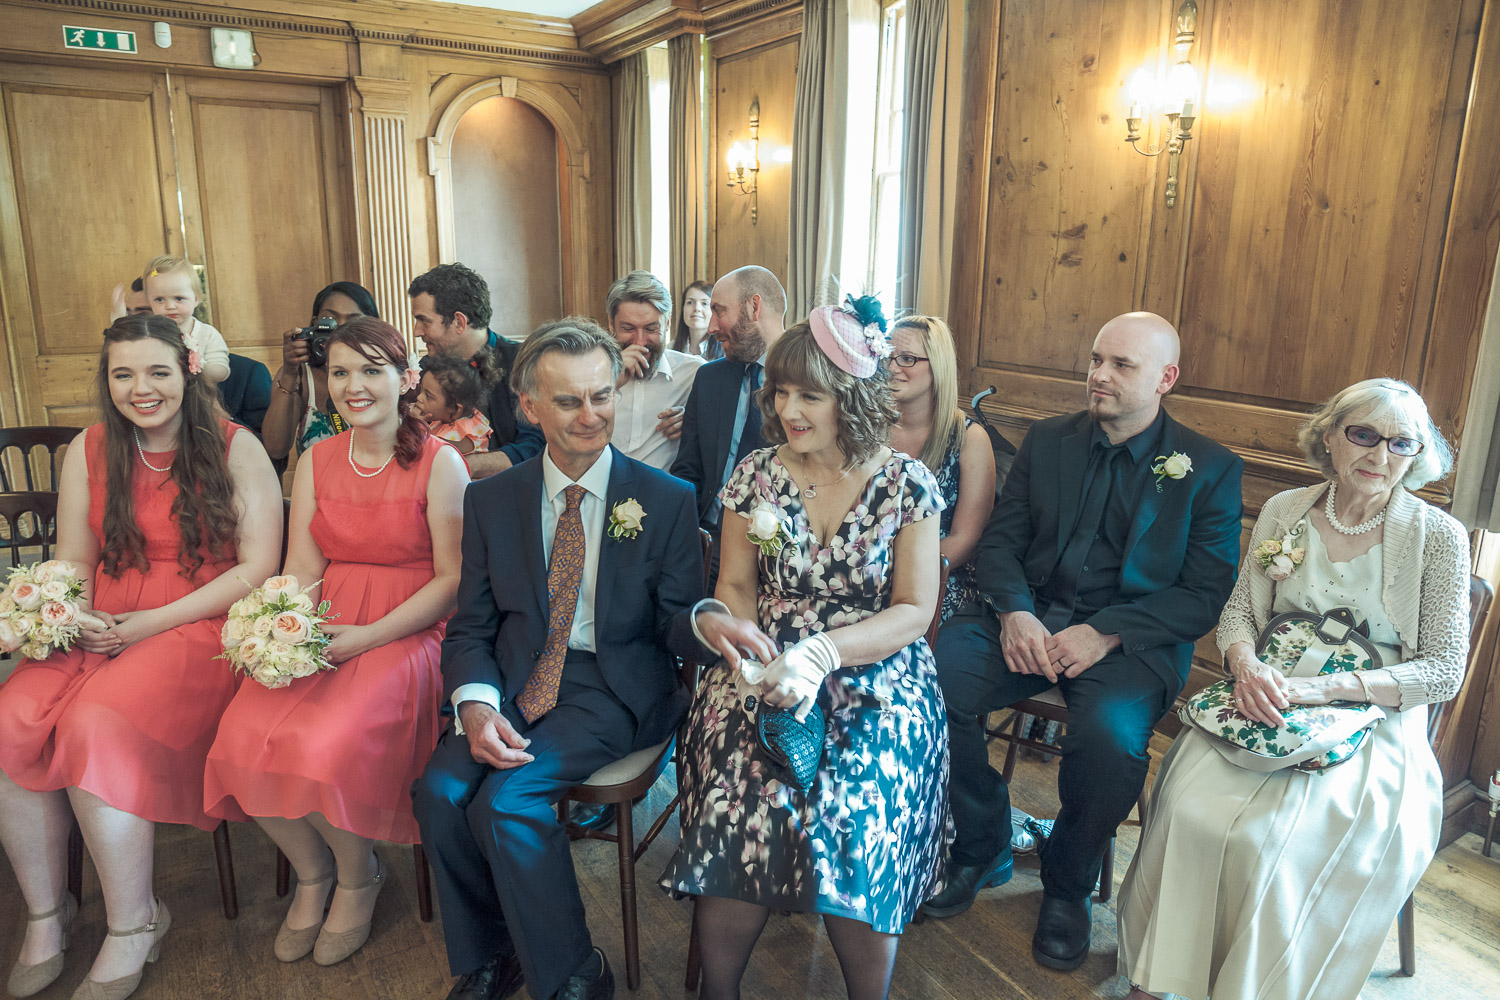 burgh-house-hampstead-north-london-wedding-0077.jpg